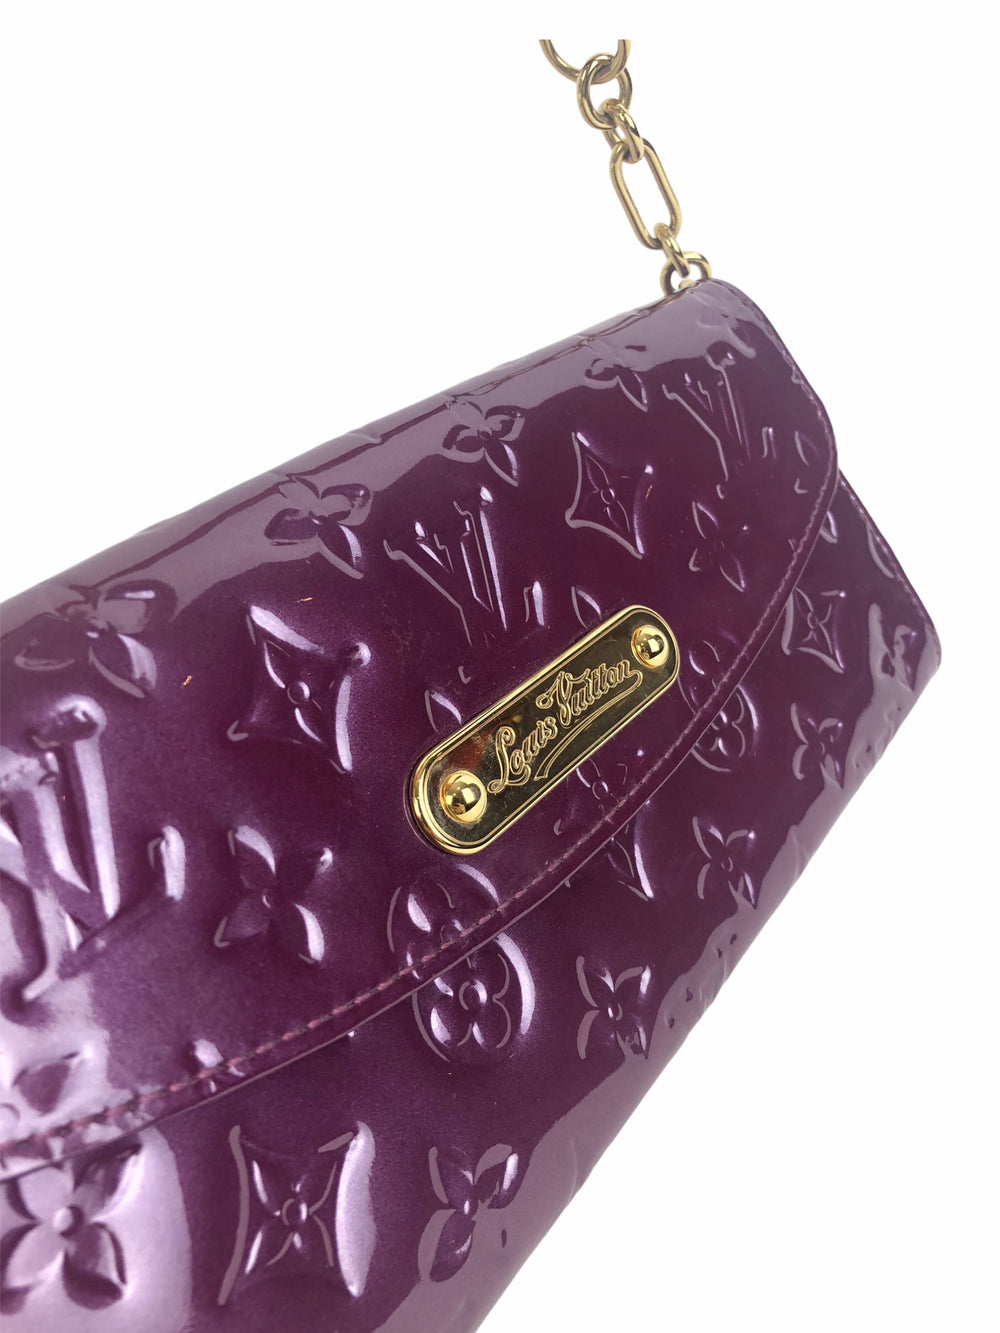 Louis Vuitton Purple Vernis Leather Pochette - As Seen on Instagram 18/10/2020